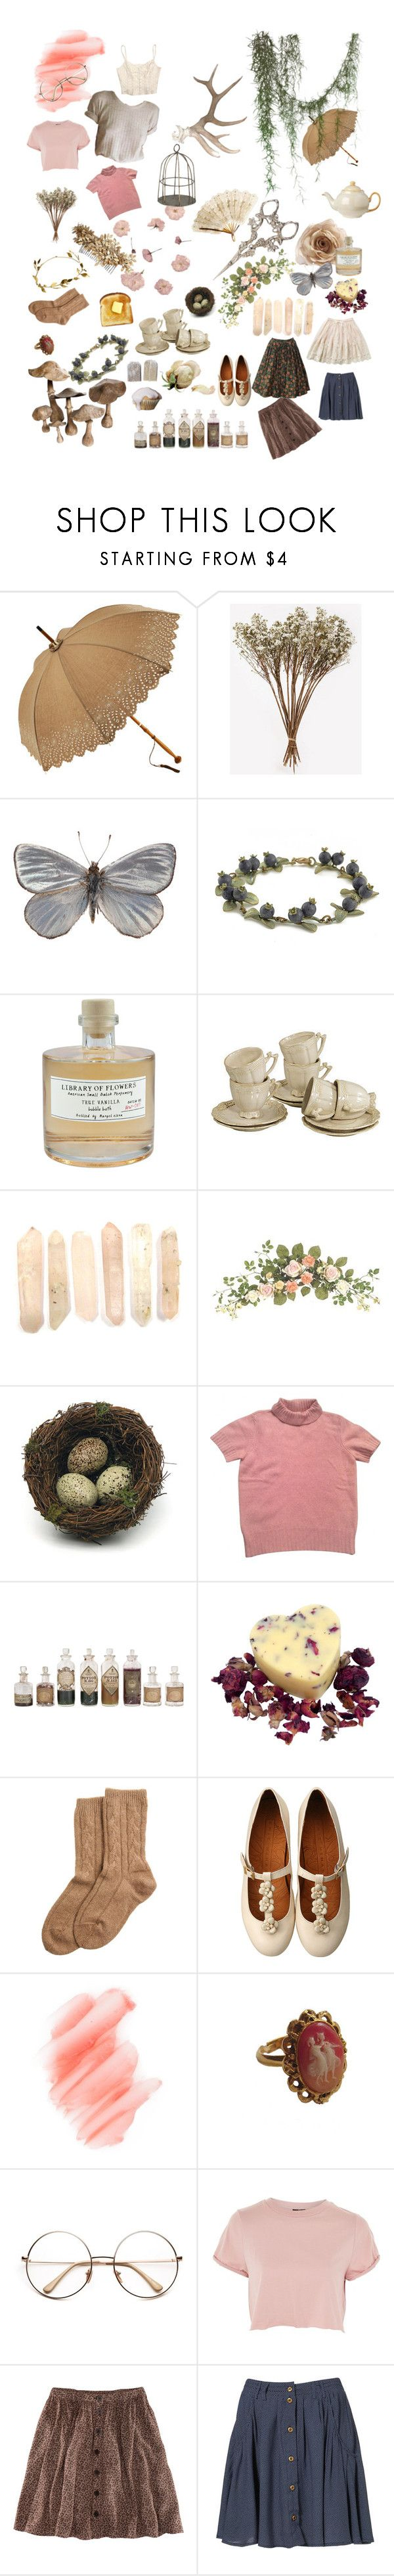 """ella avery 2"" by wrenmaverique ❤ liked on Polyvore featuring Library of Flowers, Vera Wang, Antler, Kenzo, Bamford, Chie Mihara, Birchrose + Co., Cameo, Topshop and H&M"